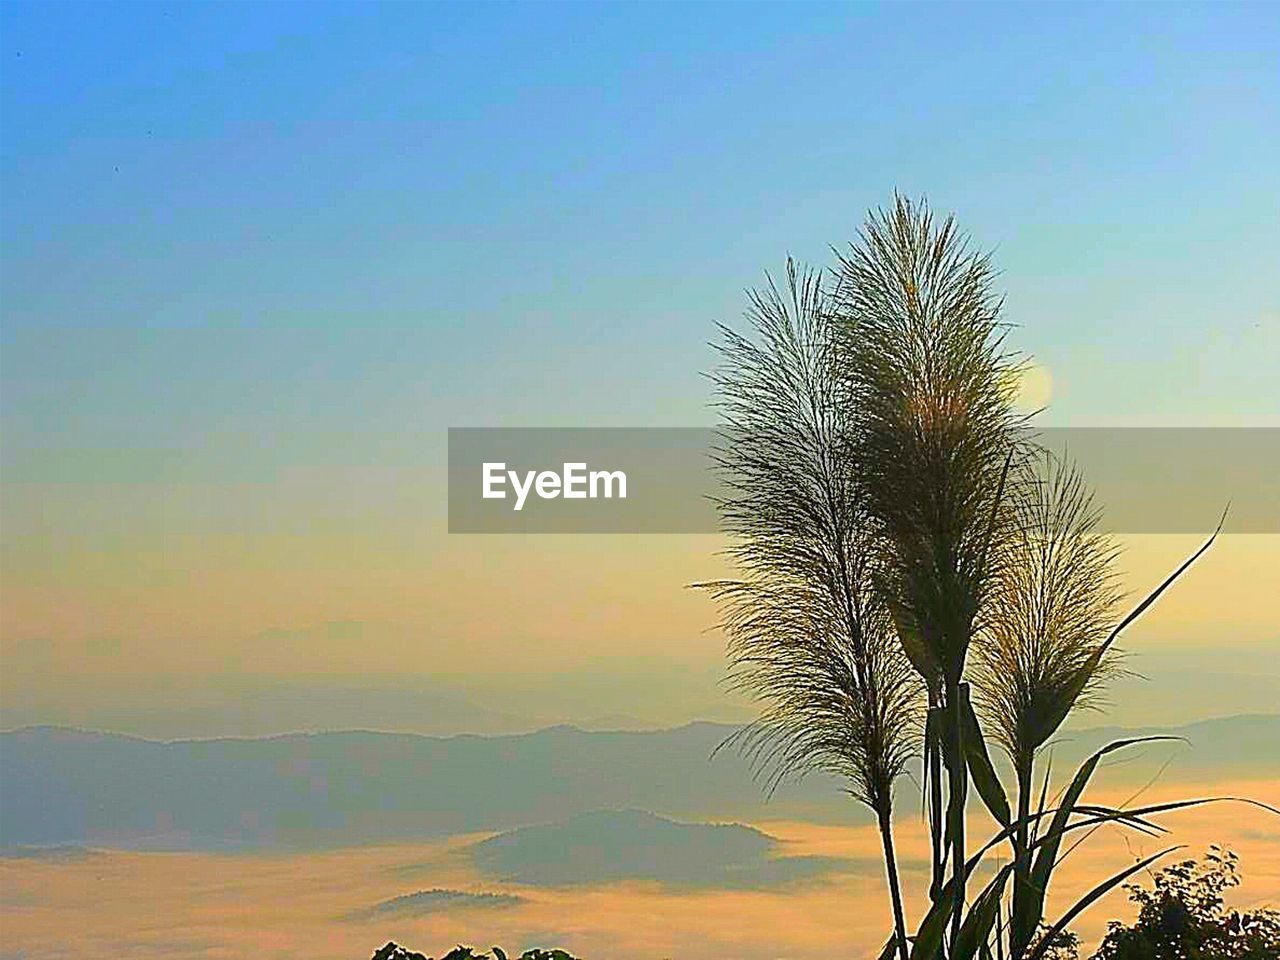 sky, plant, beauty in nature, growth, tranquility, scenics - nature, nature, tree, no people, sunset, tranquil scene, outdoors, green color, palm tree, cloud - sky, day, leaf, tropical climate, idyllic, palm leaf